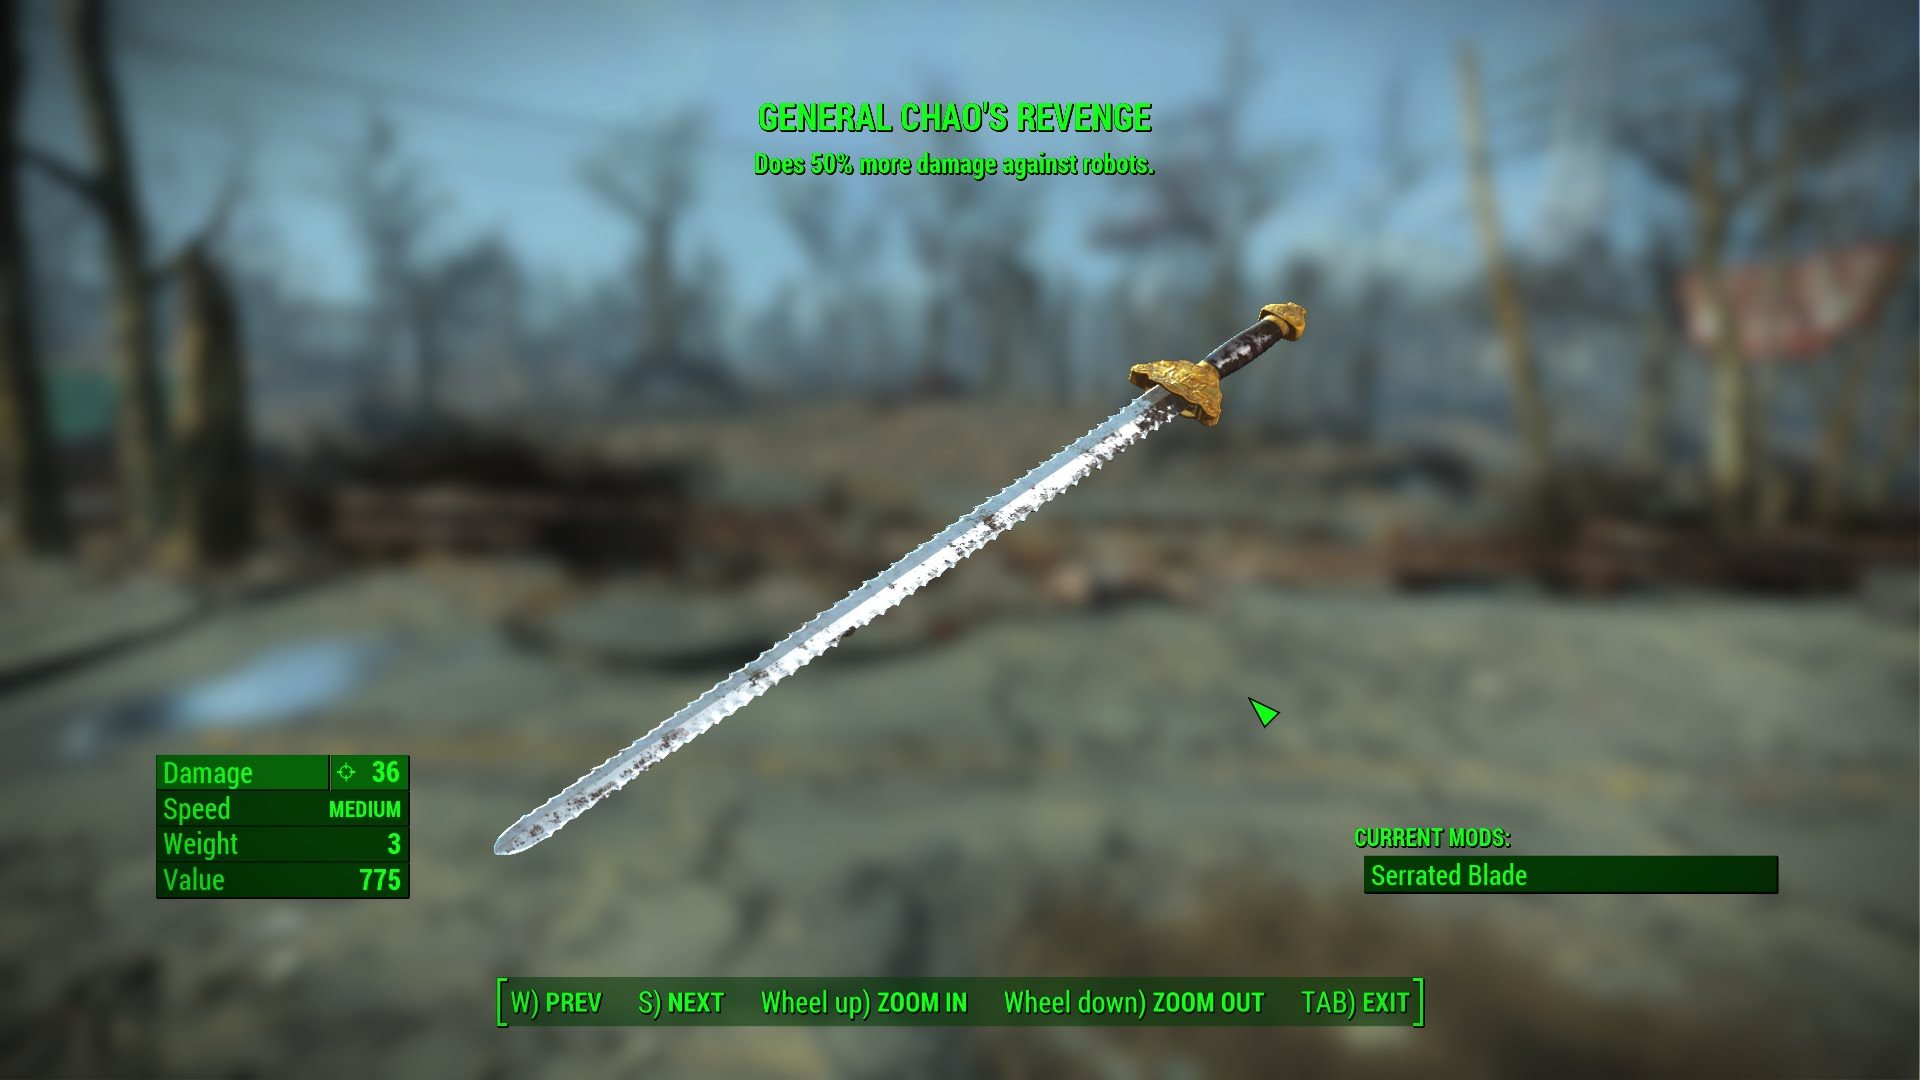 Page 6 of 10 for 50 Most Powerful Fallout 4 Weapons and How to Get ...